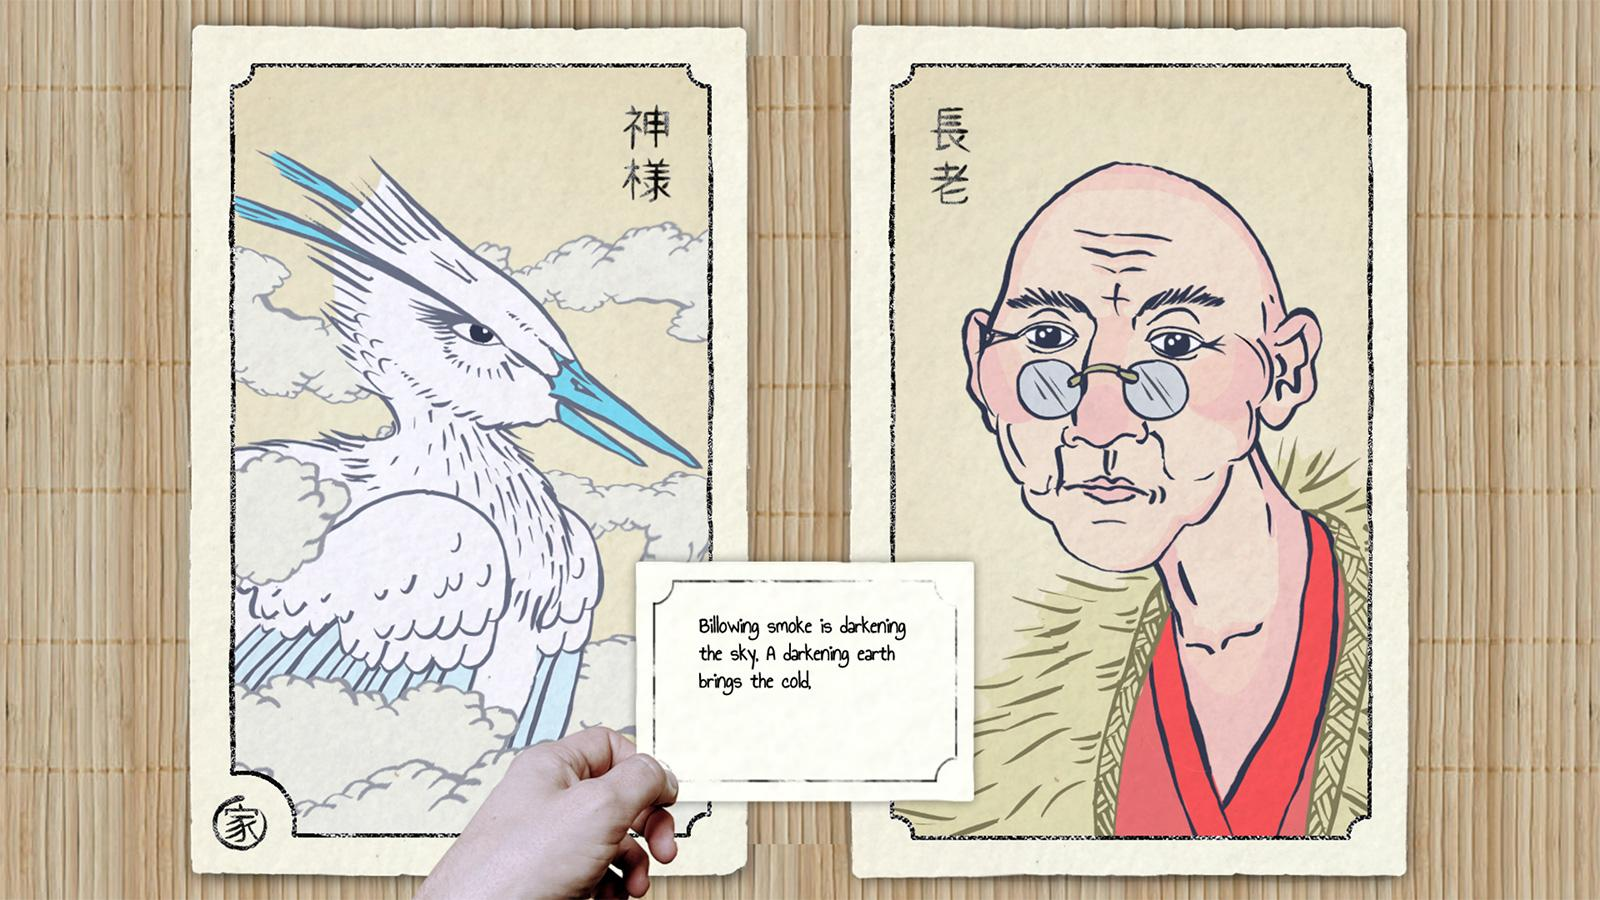 From Haiku to Hokusai: How a new puzzle game was inspired by